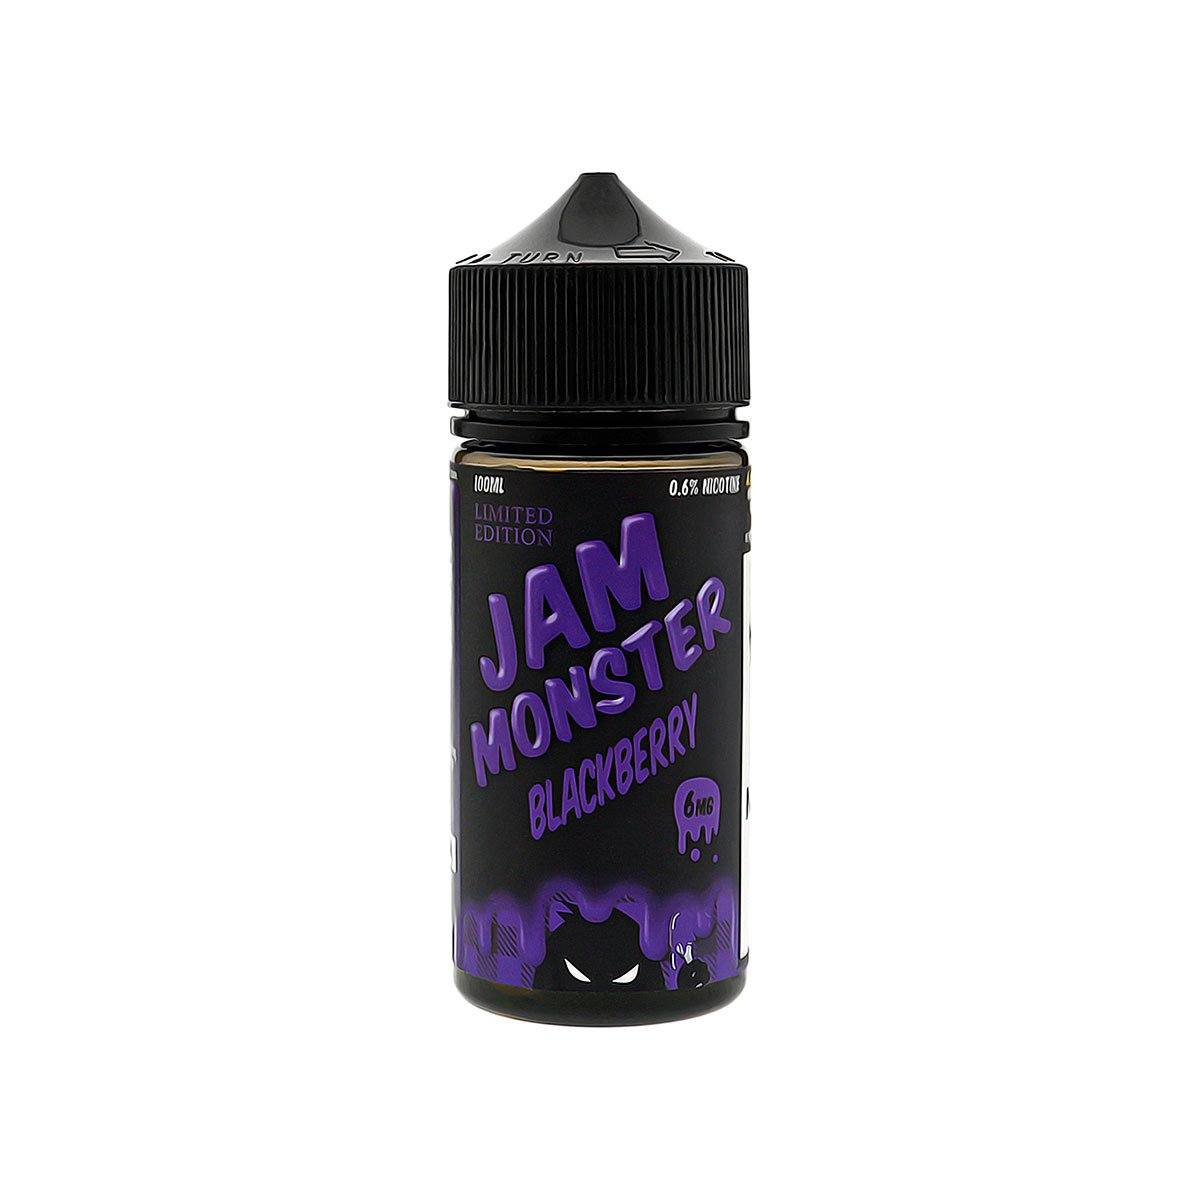 Jam Monster Blackberry E-Juice Bottle